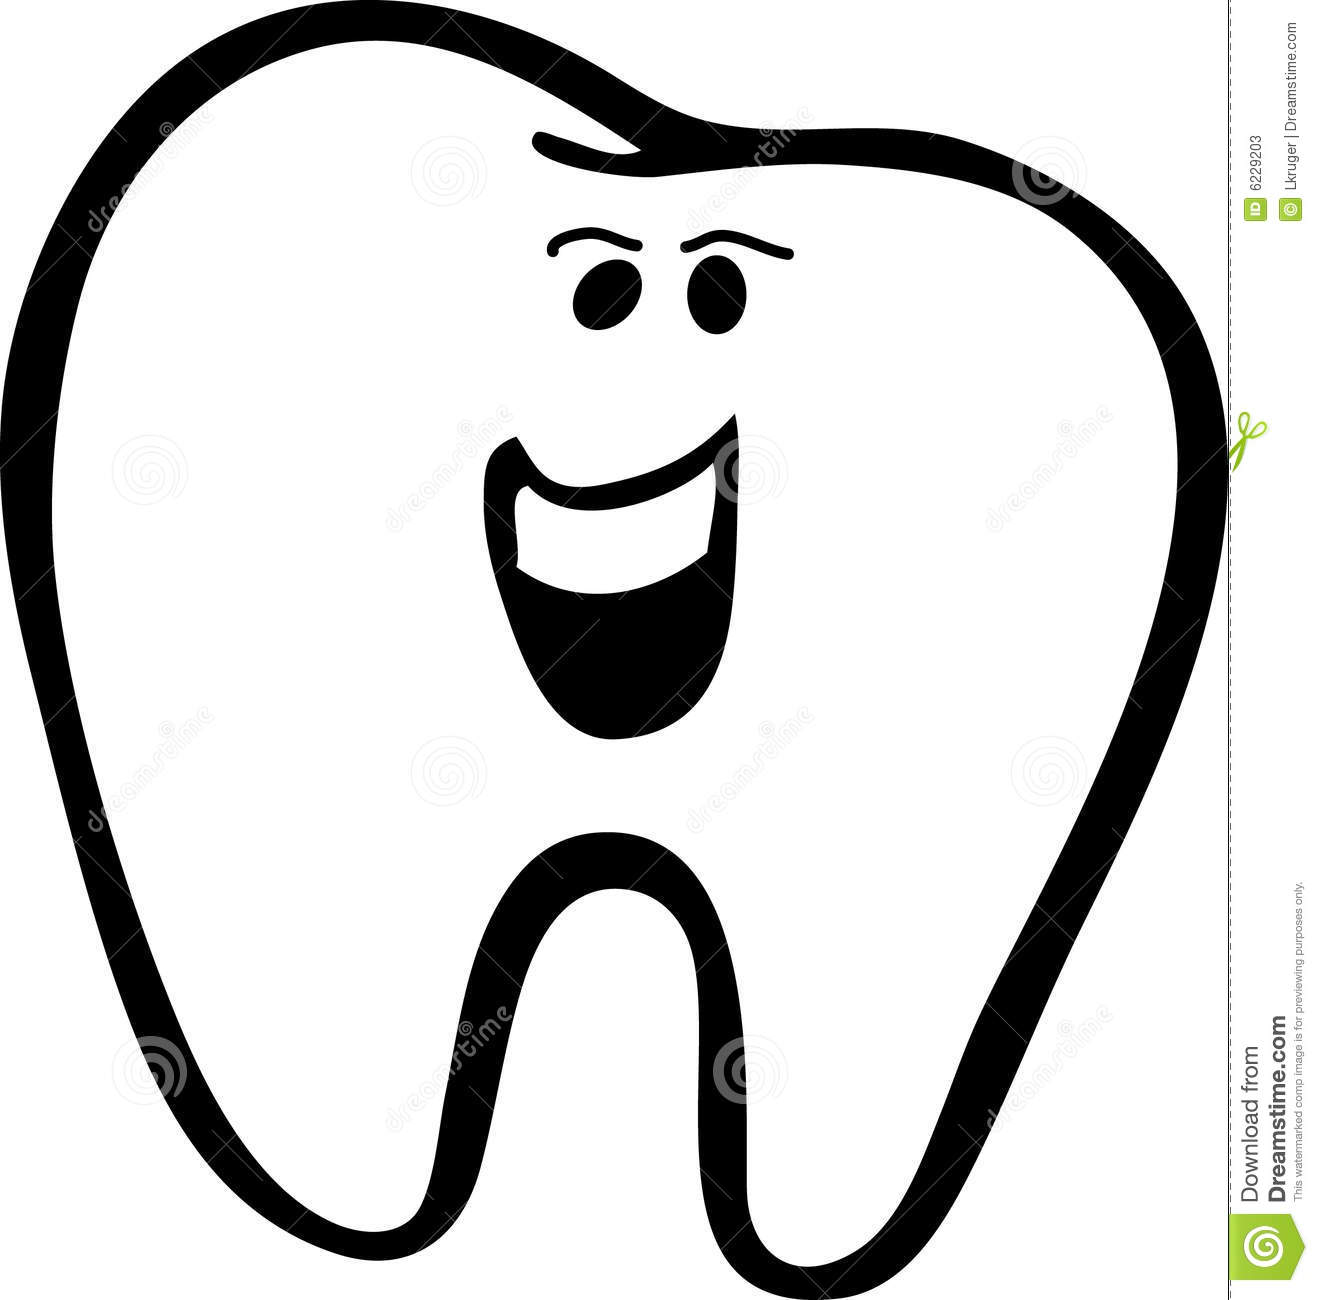 1318x1300 Smile Clipart Black And White With Toothbrush